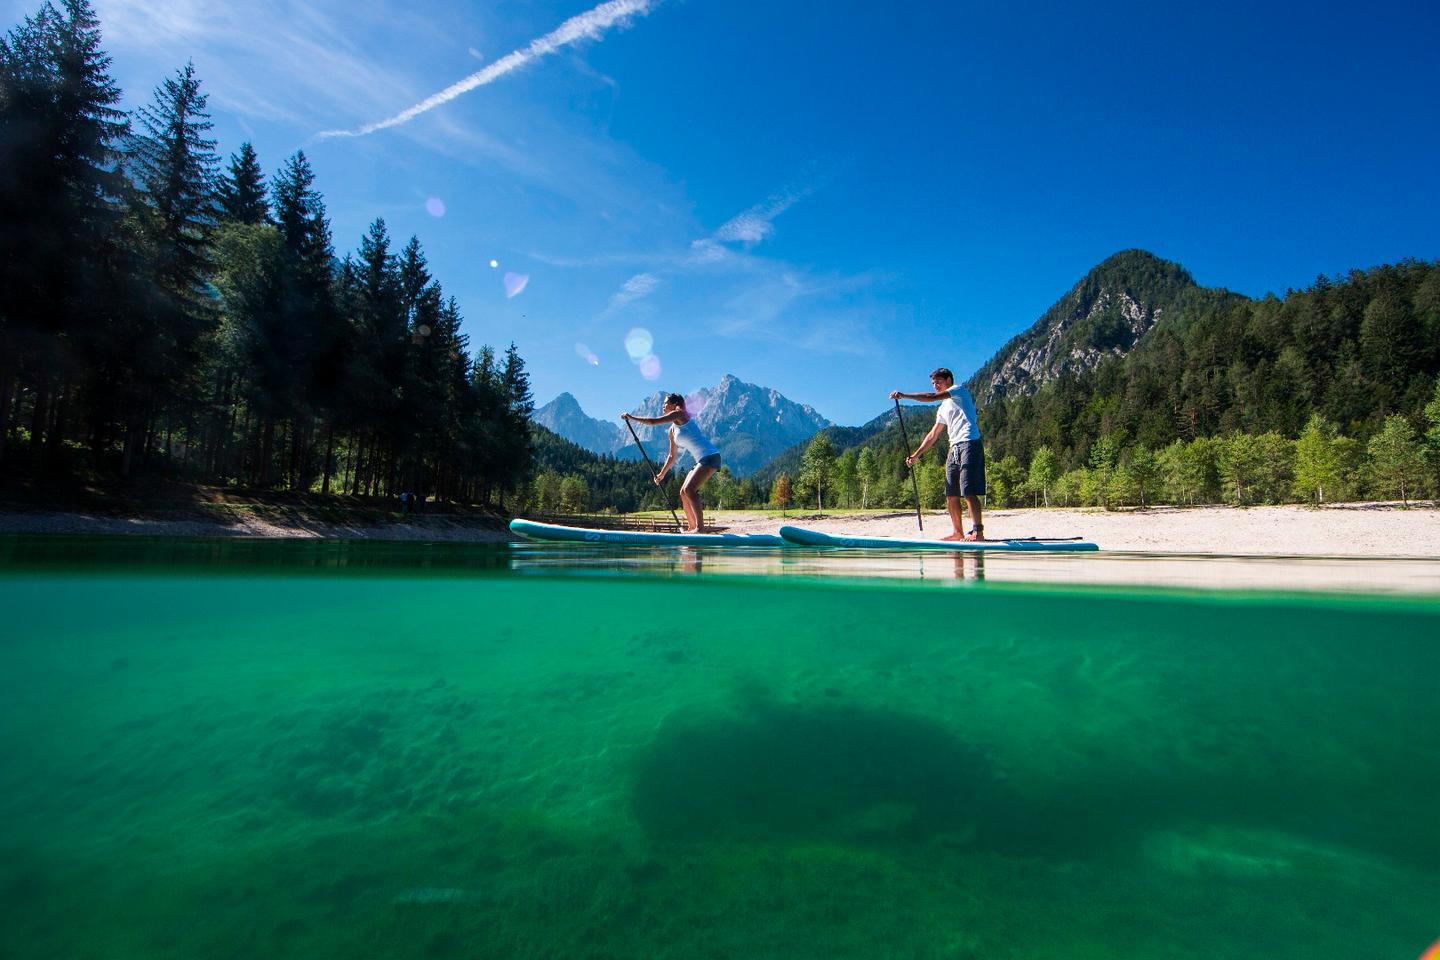 The SipaBoards Air is a self-inflating stand-up paddleboard